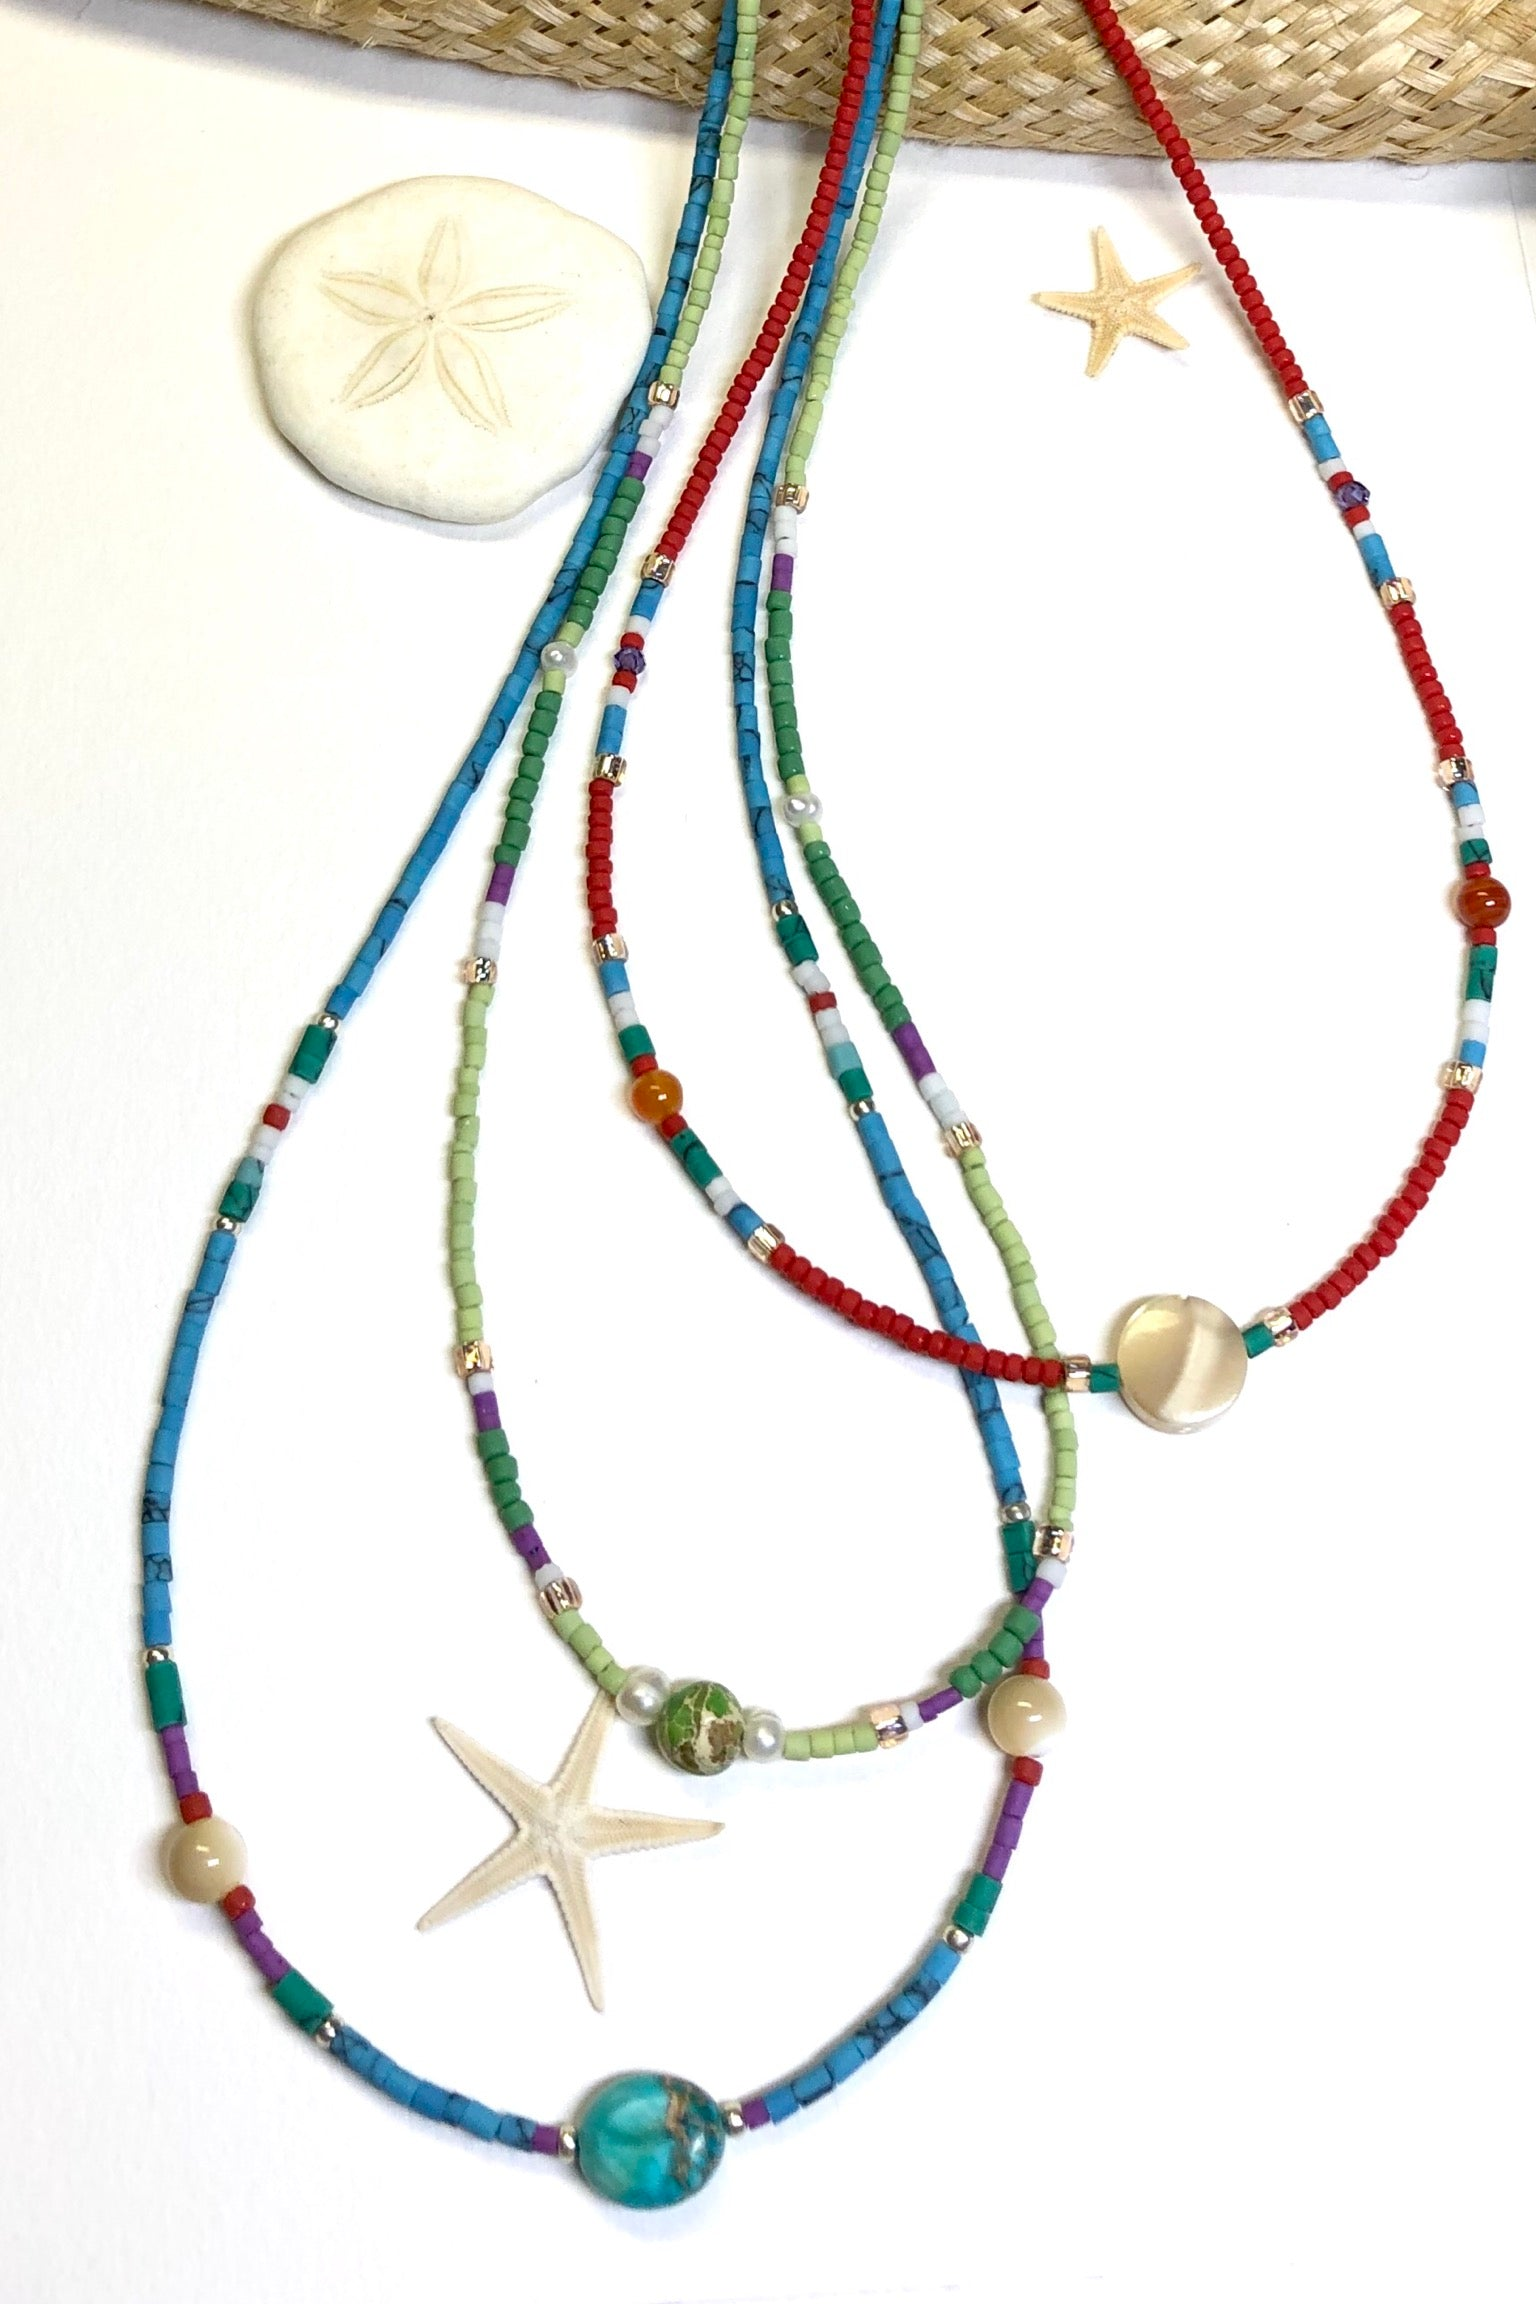 Necklace Cay Island Green is exclusive and handmade featuring 45cm in length and tiny Afghan seed beads, Mother of Pearl, glass and turquoise howlite stone.